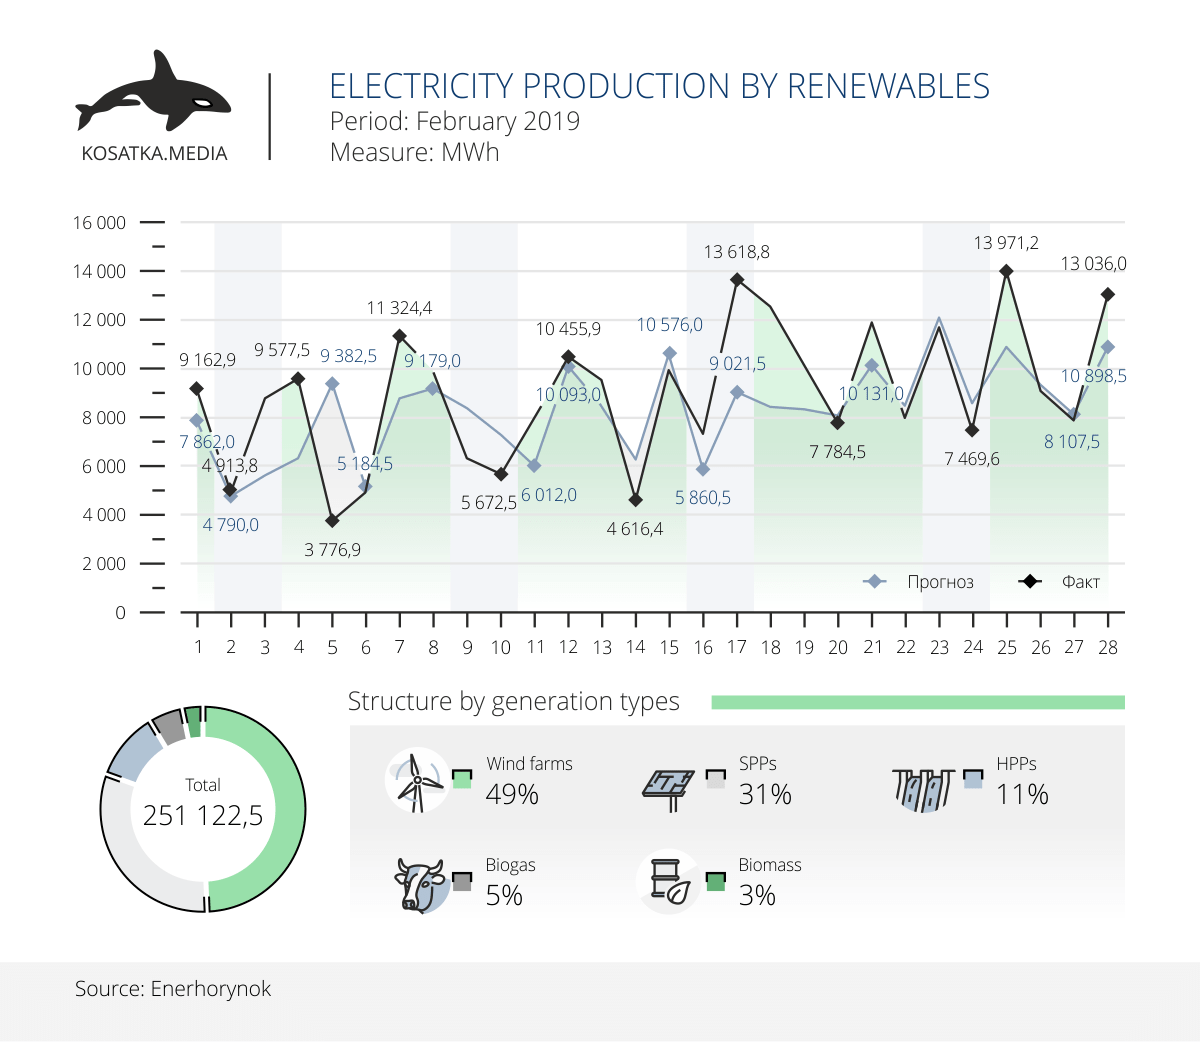 Electricity generation by renewables